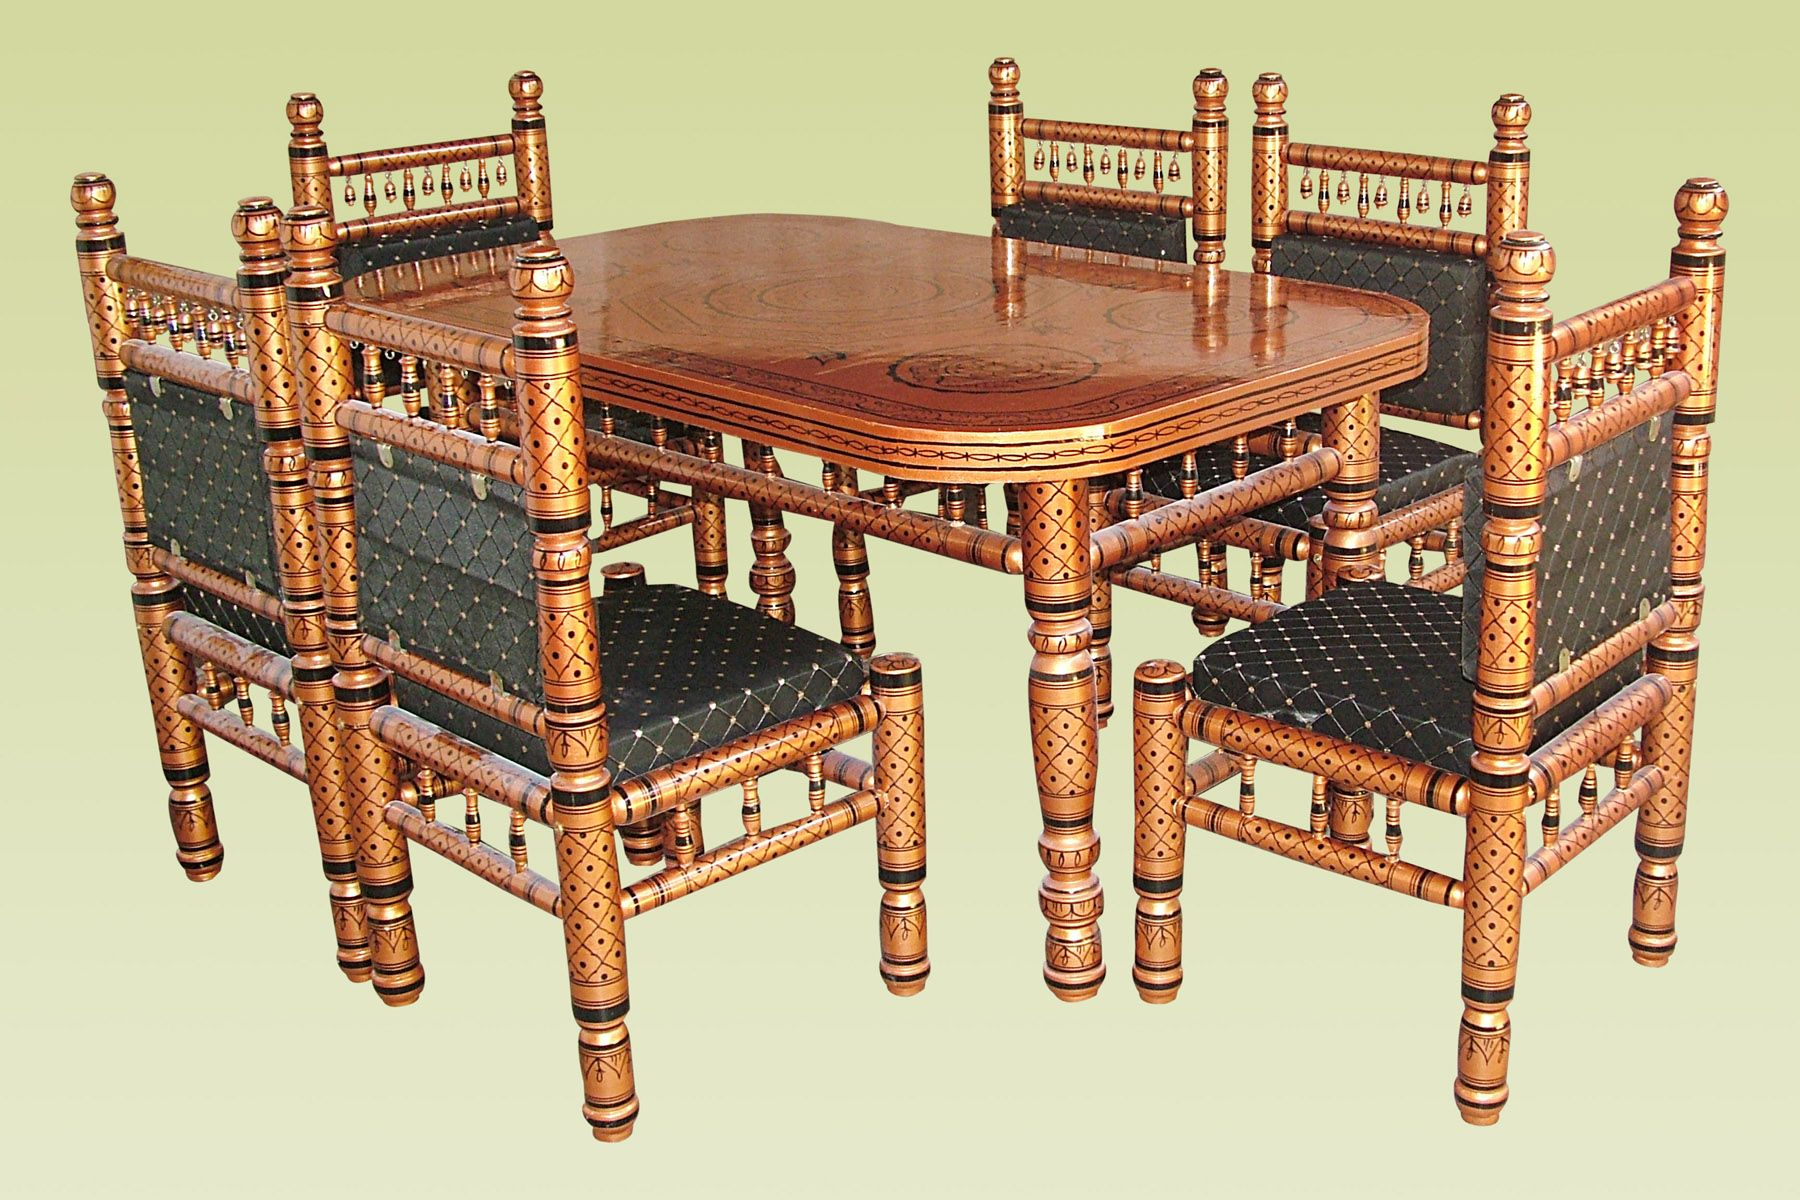 punjabi dining table furniture design ideas Places to  : f3fc330b66406dc0b1cd57cd2af6779d from www.pinterest.com size 1800 x 1200 jpeg 533kB